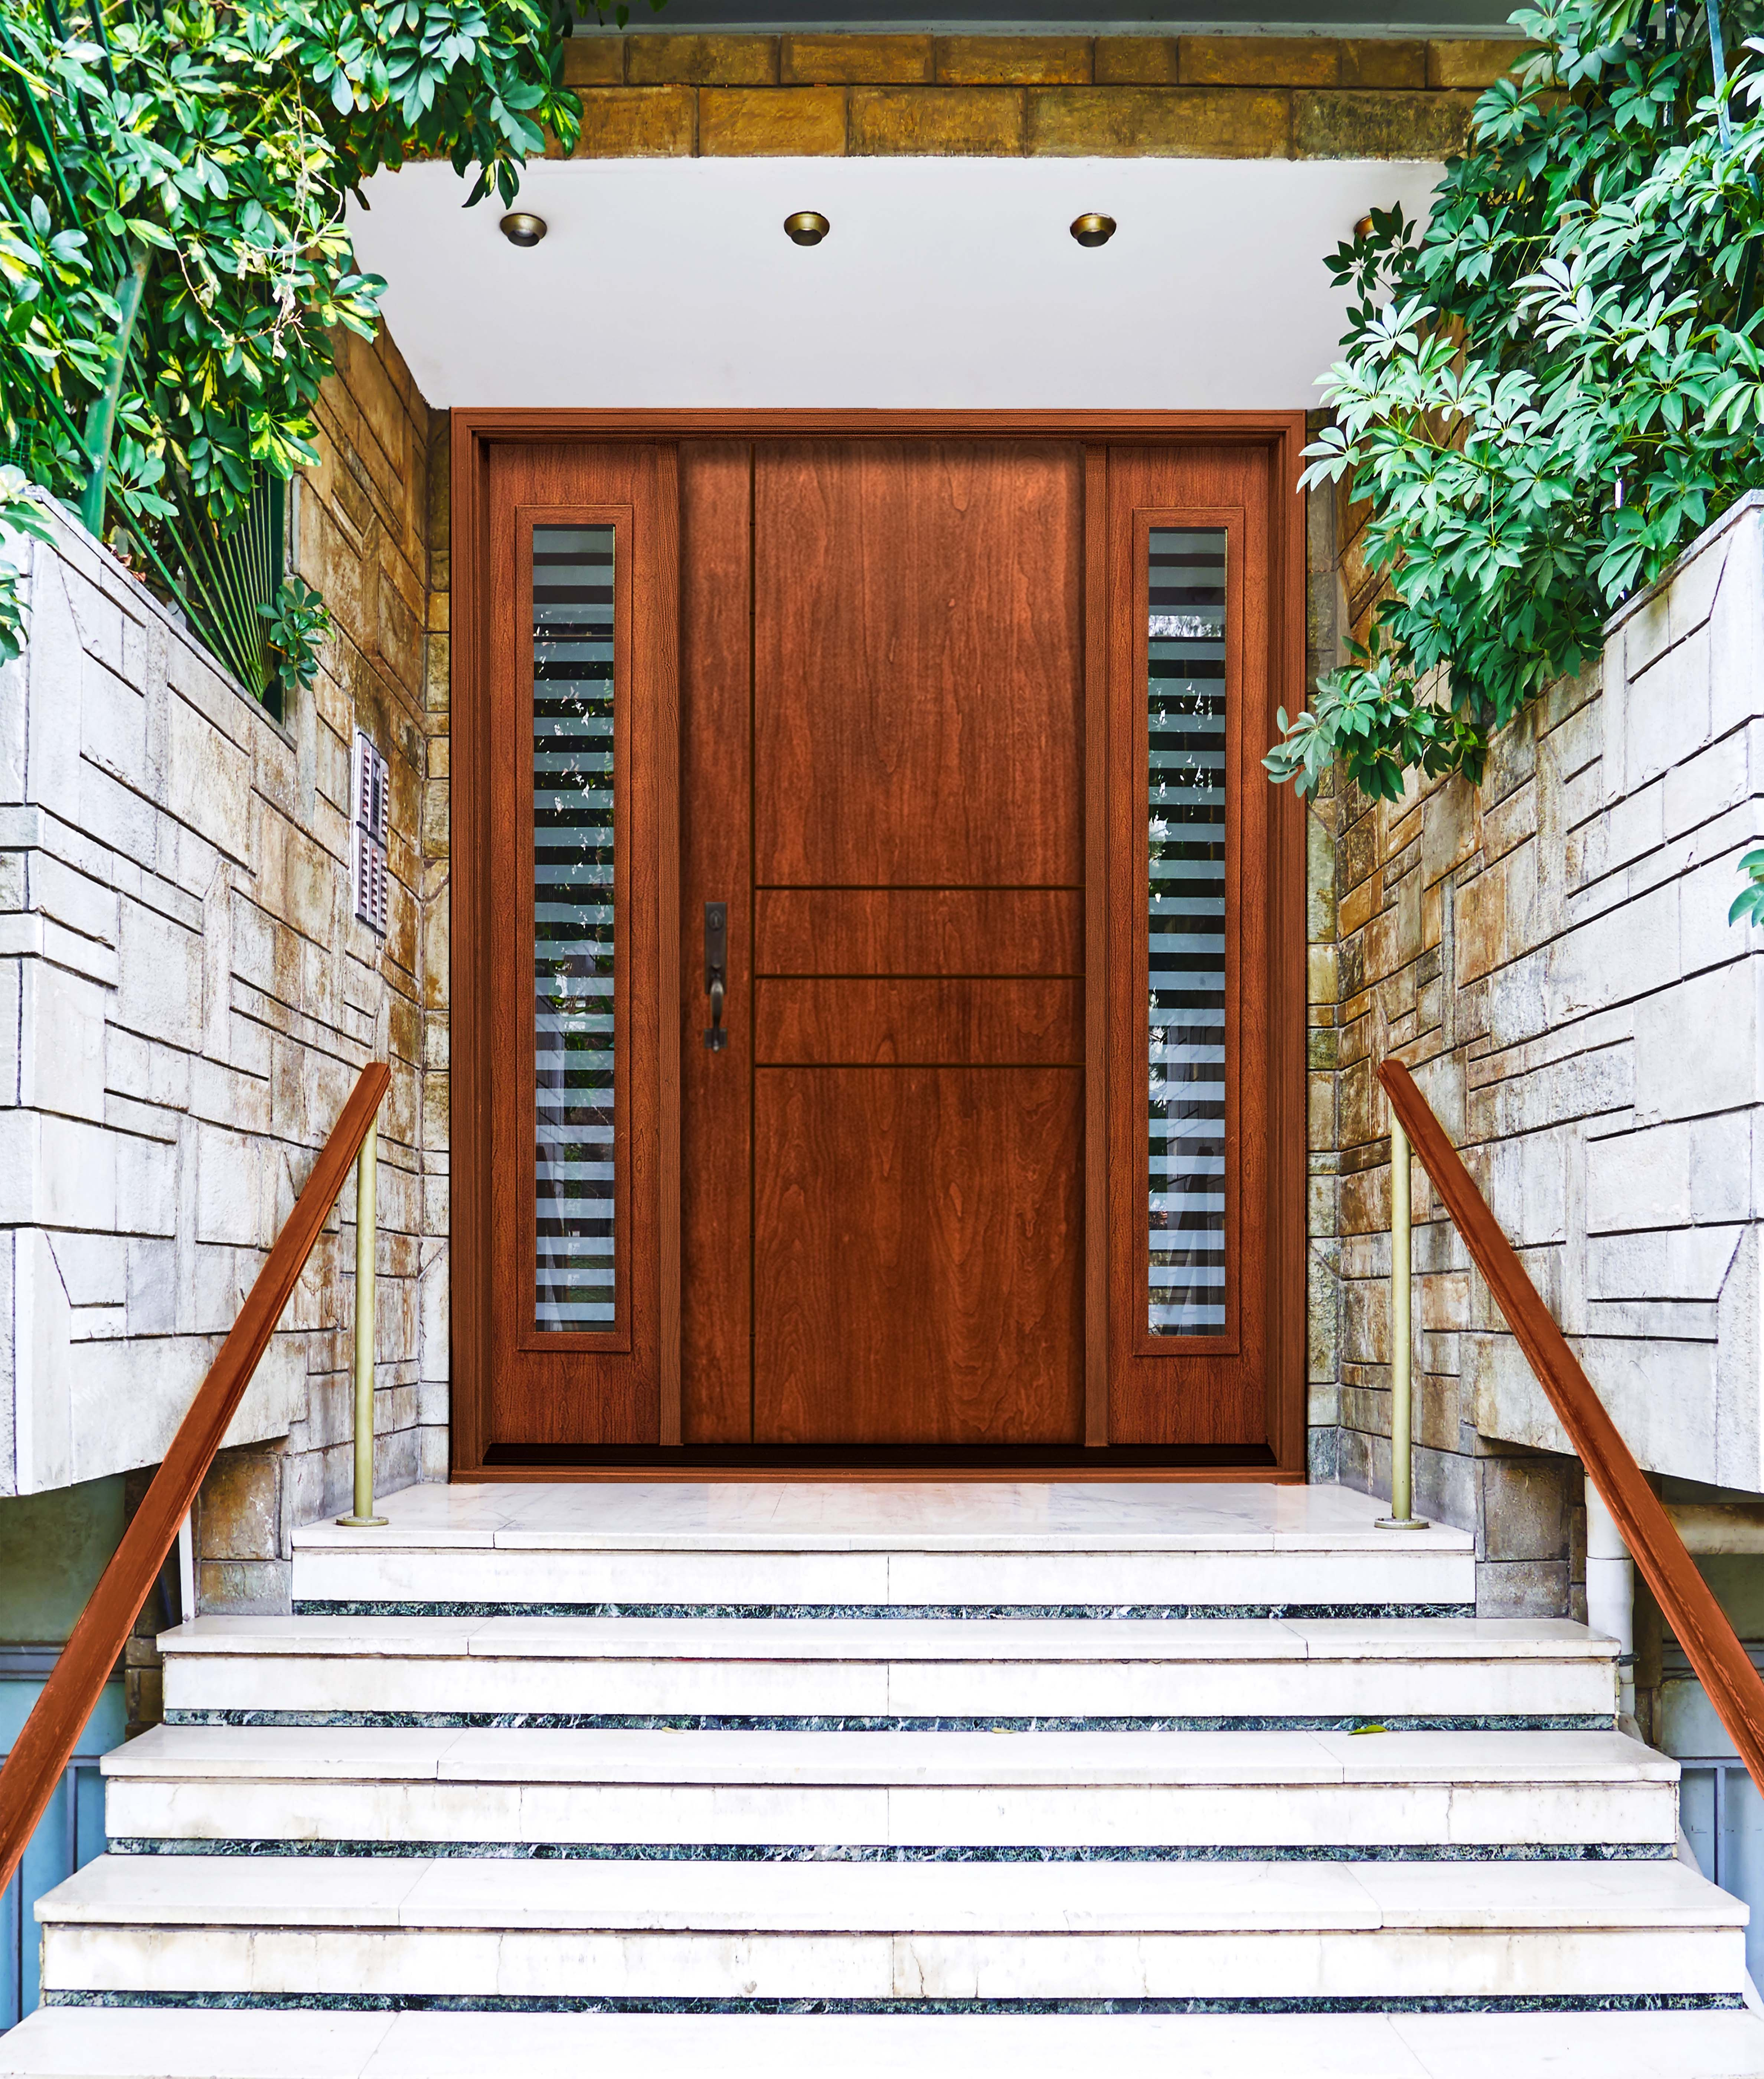 Fiberglass entry door systems wood doors - Mastergrain Premium Fiberglass Entry Doors Combine The Most Authentic Wood Grain Replication With Strength And Efficiency